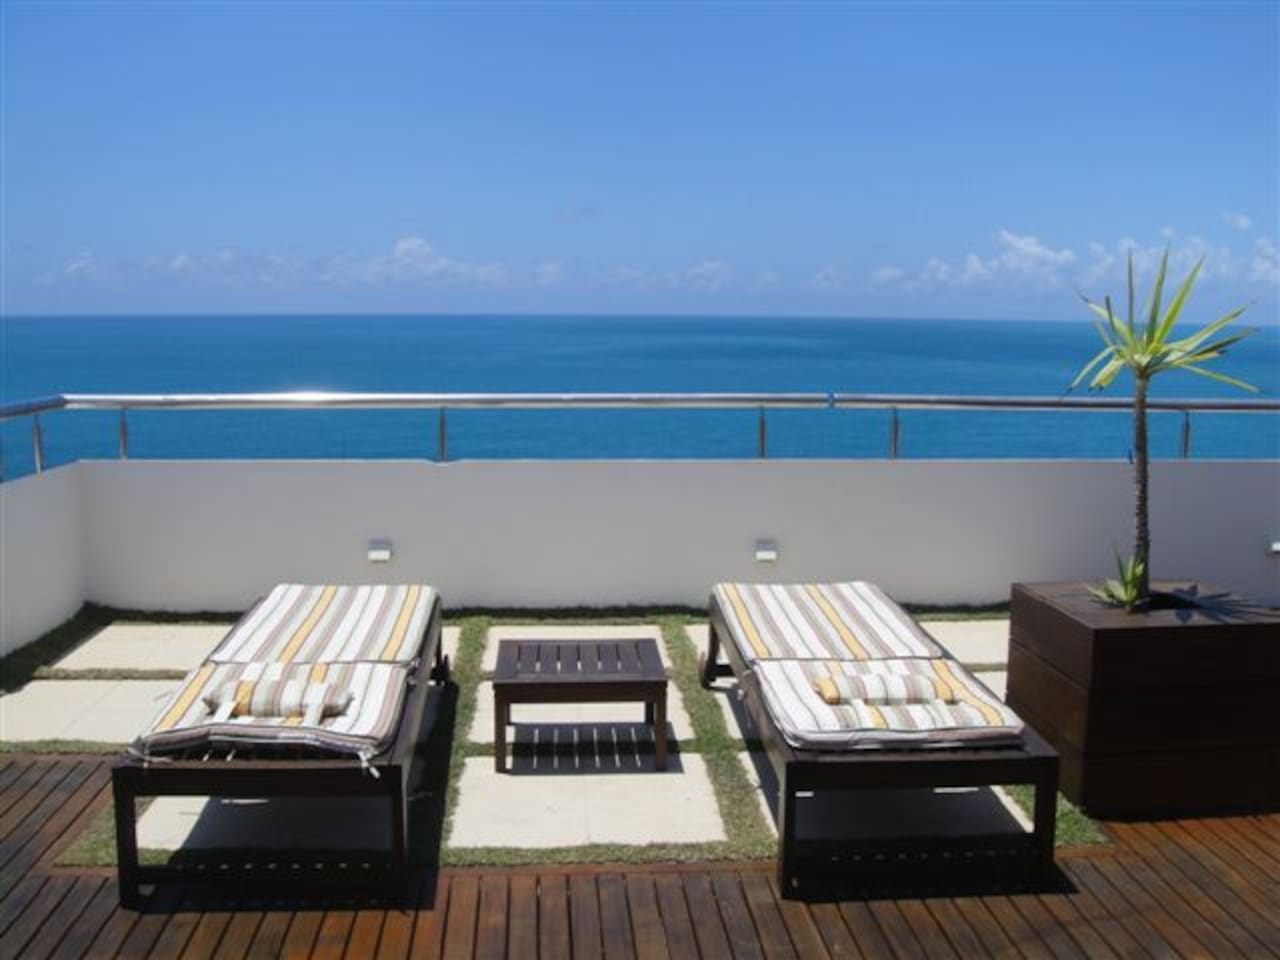 Beautiful Barra Penthouse with an amazing panoramic seaview. Wonderfully relaxing.